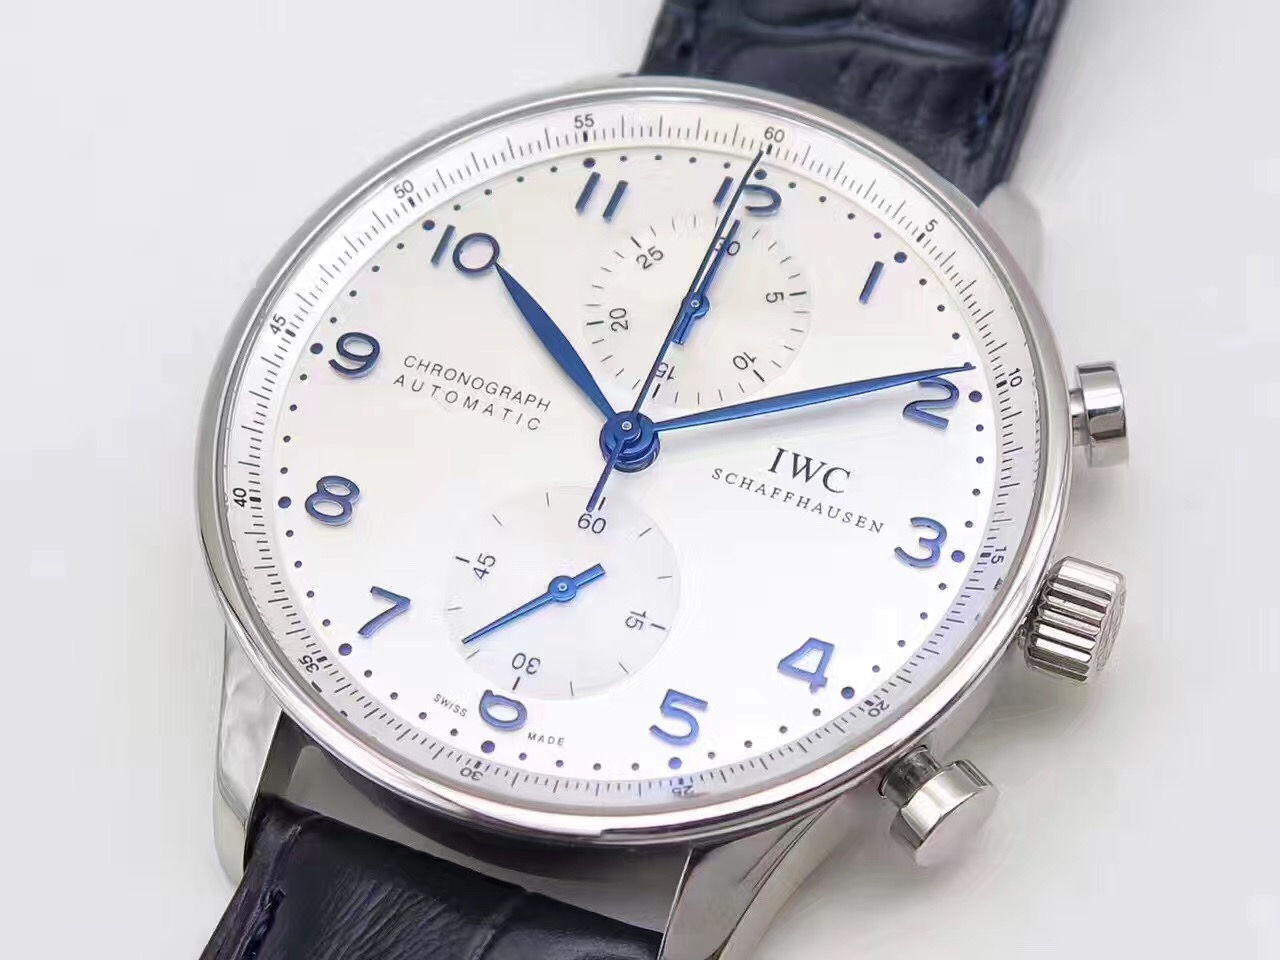 IWC chronograph automatic series